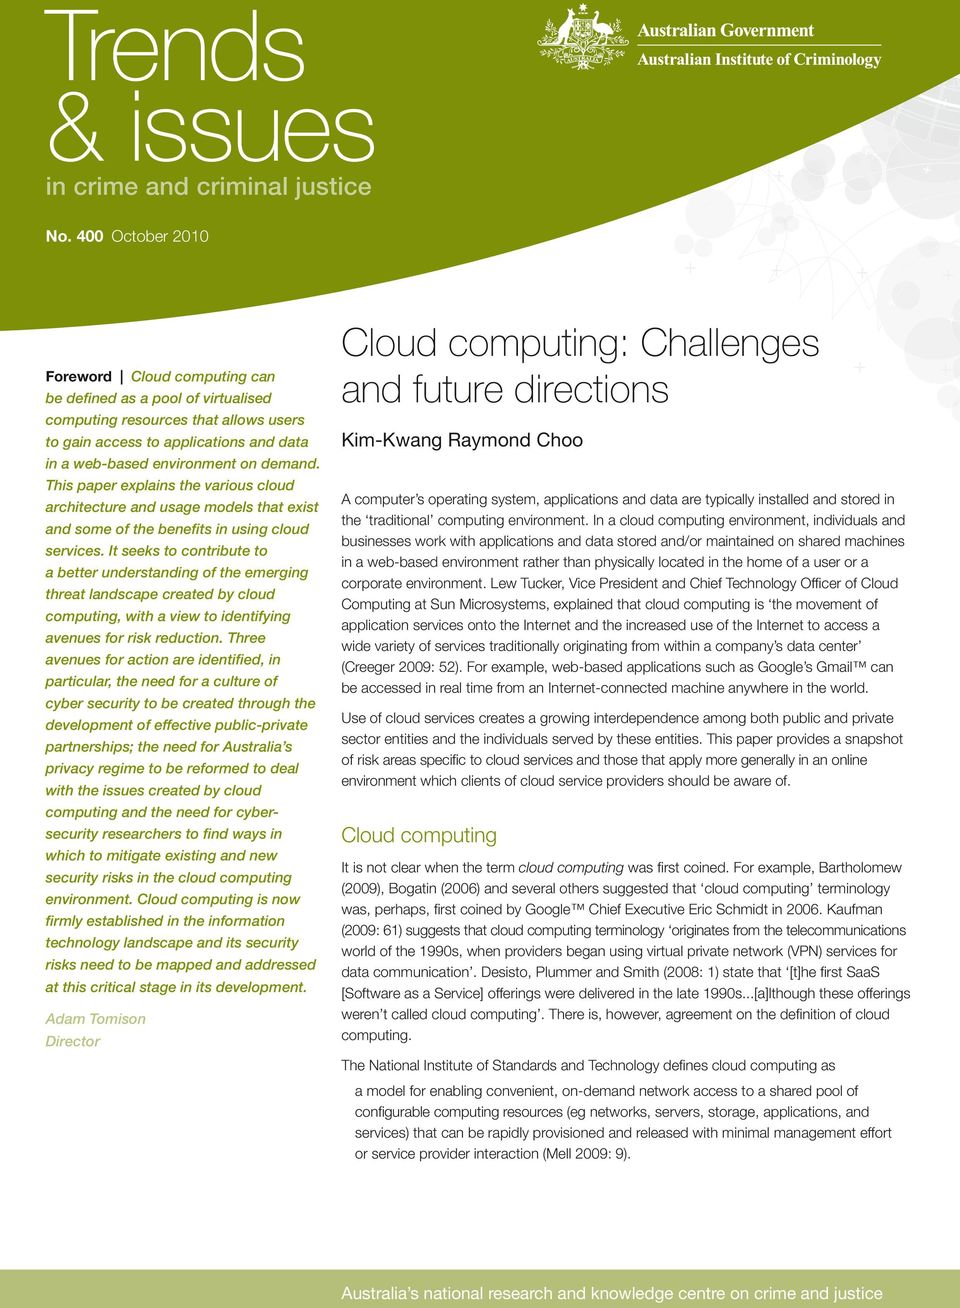 This paper explains the various cloud architecture and usage models that exist and some of the benefits in using cloud services.